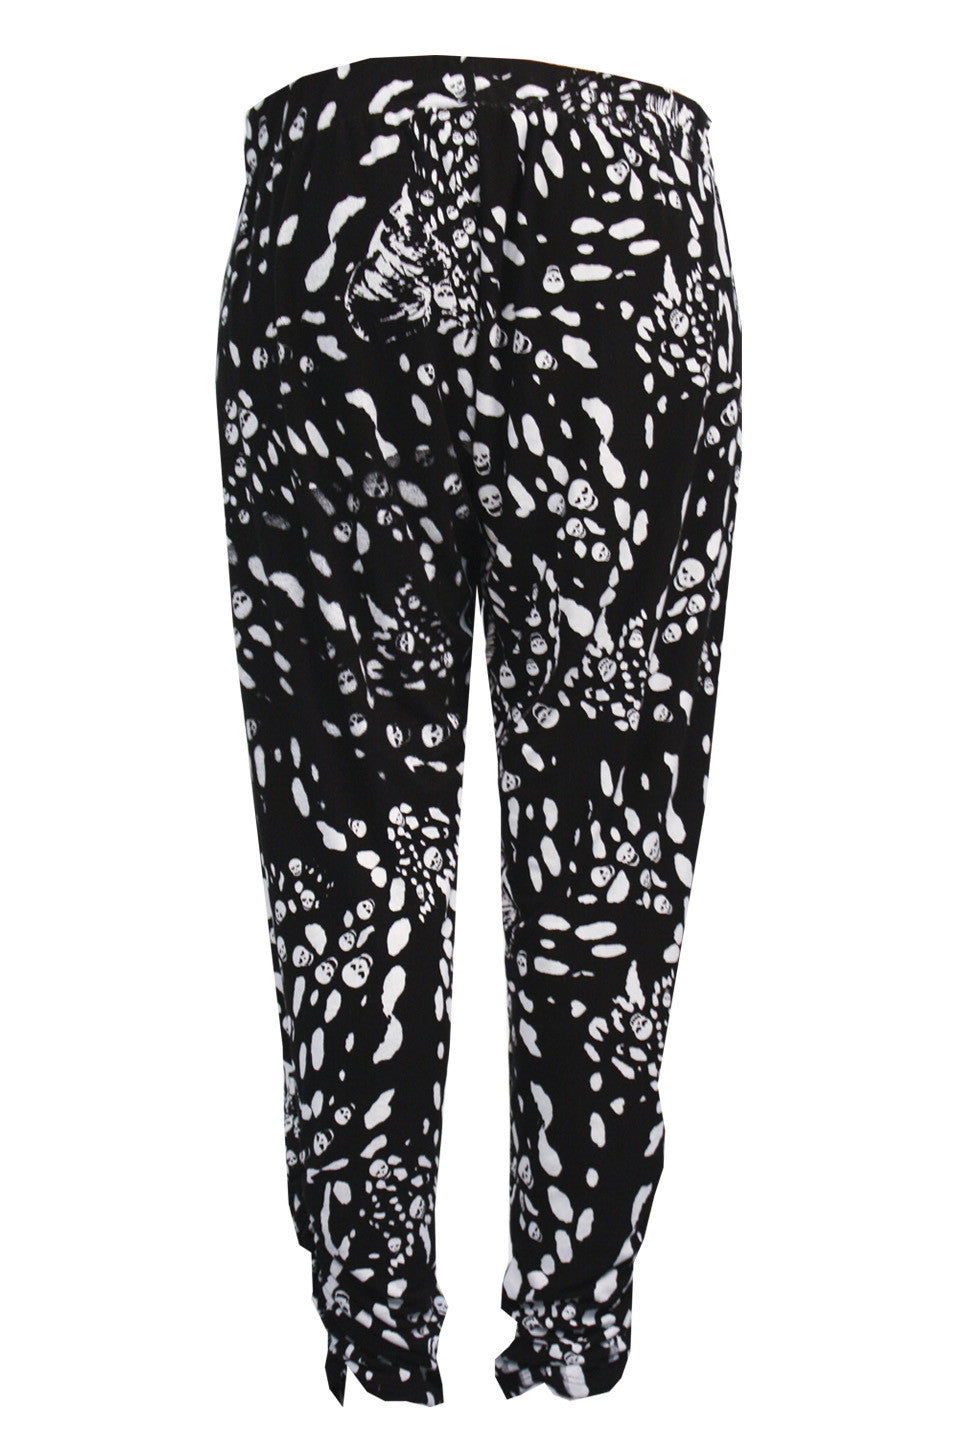 Lauren Moshi Women's Mimi Leopard Print Pant with Sheering FINAL SALE